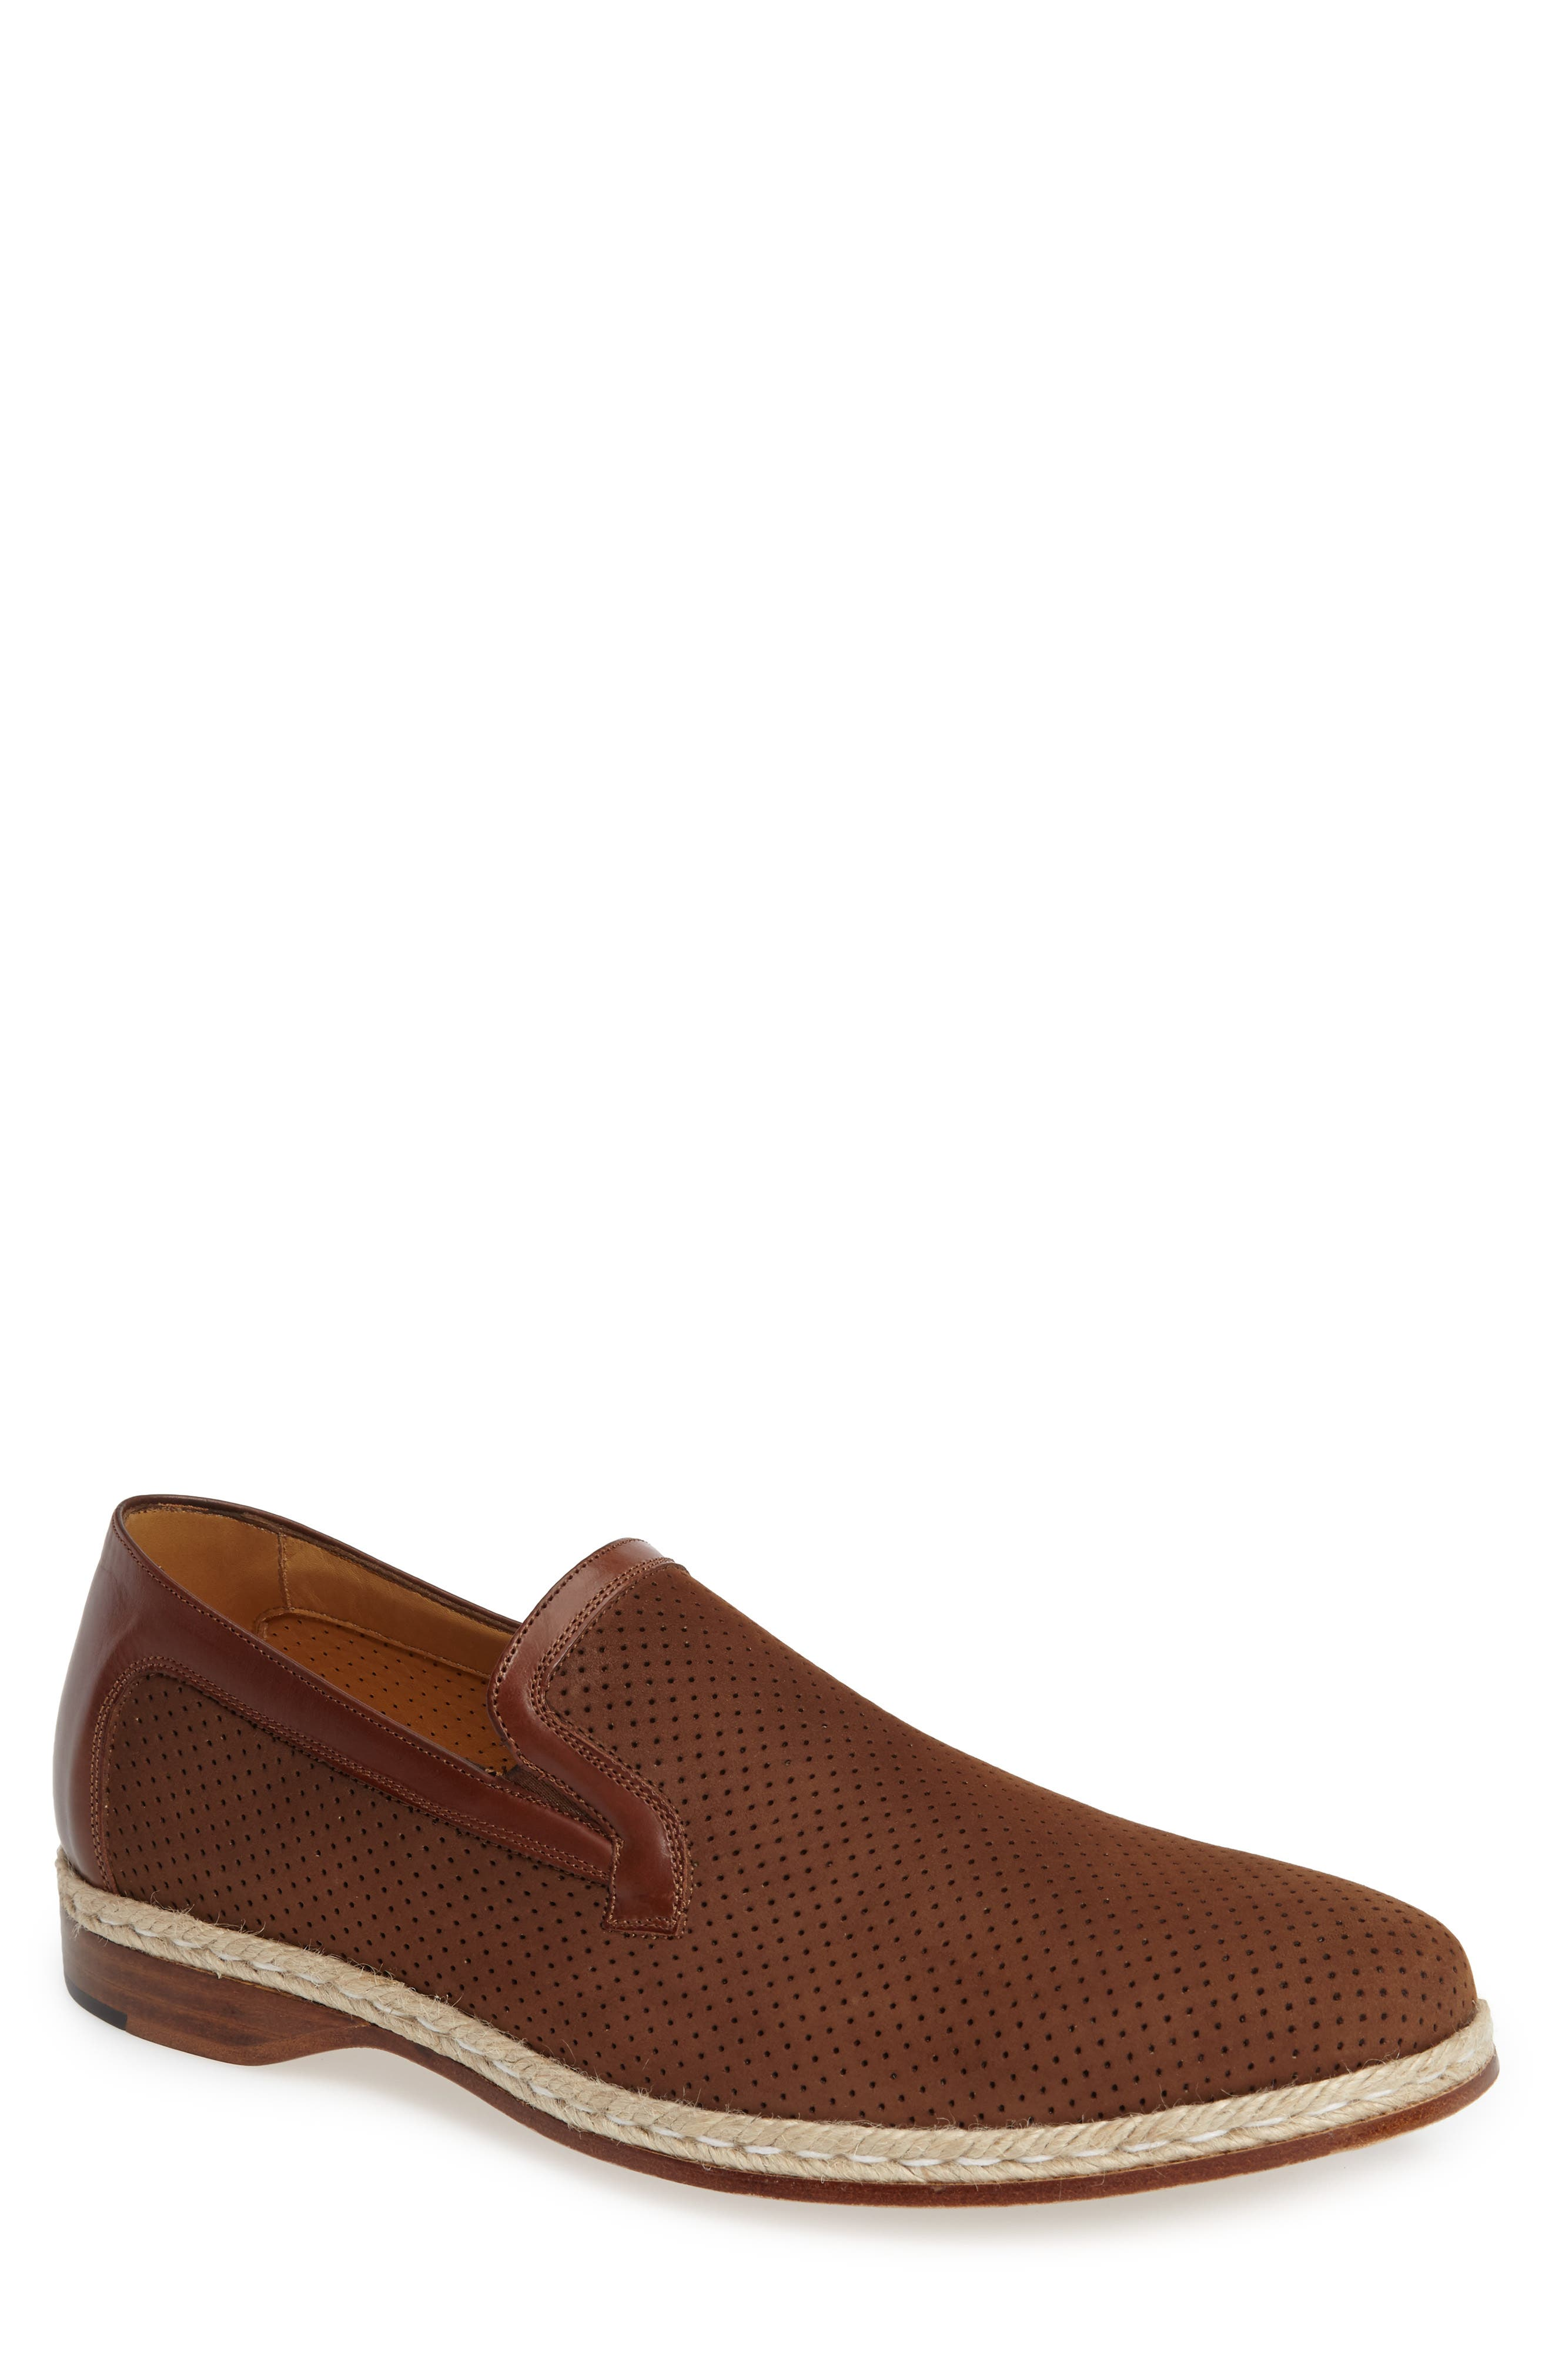 Marcet Perforated Loafer,                             Main thumbnail 1, color,                             200